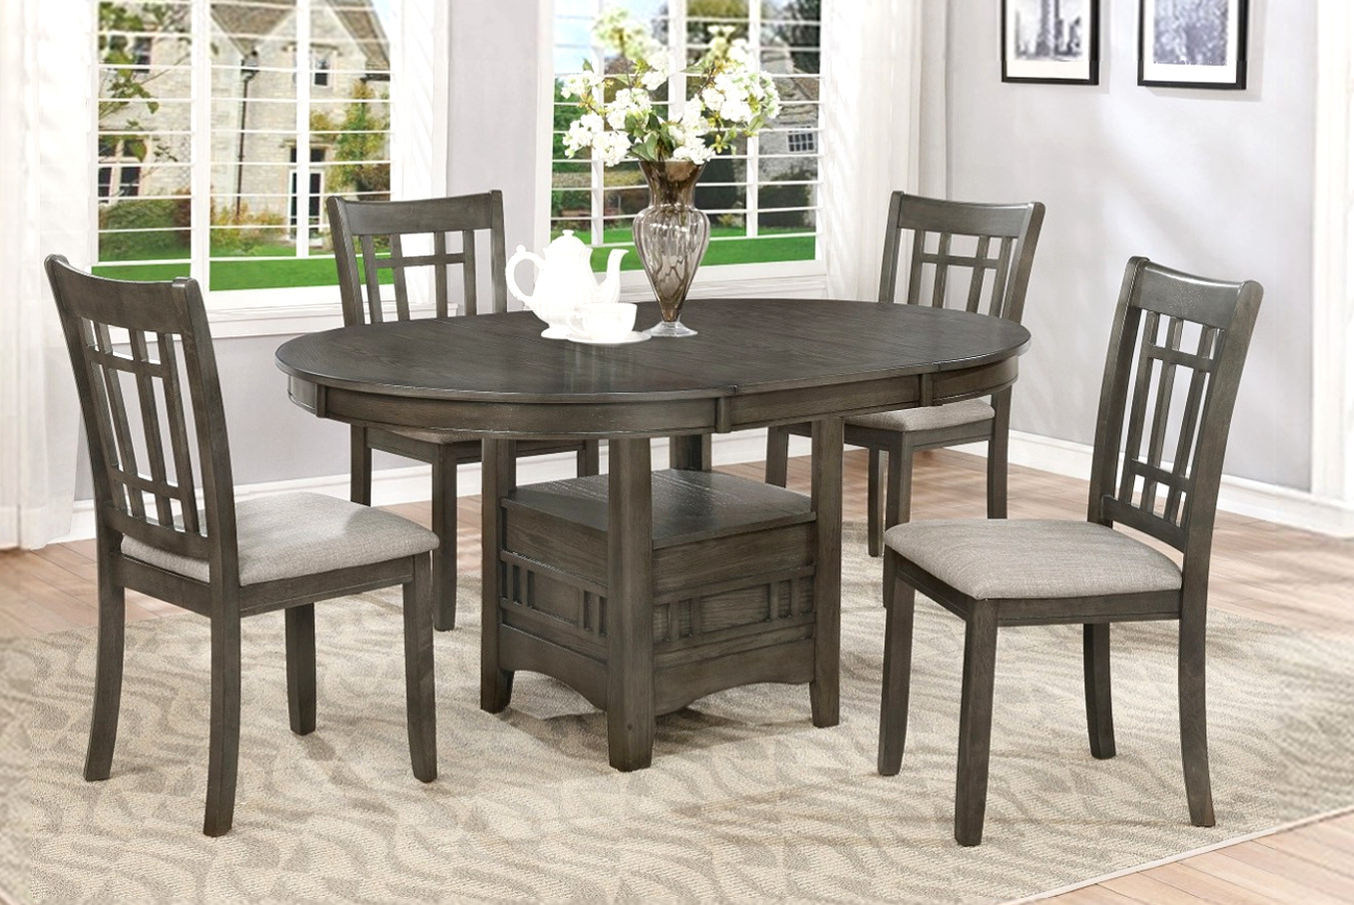 Transitional Driftwood Casual Dining Tables Throughout Most Up To Date Furniture Clearance Center (Gallery 22 of 30)